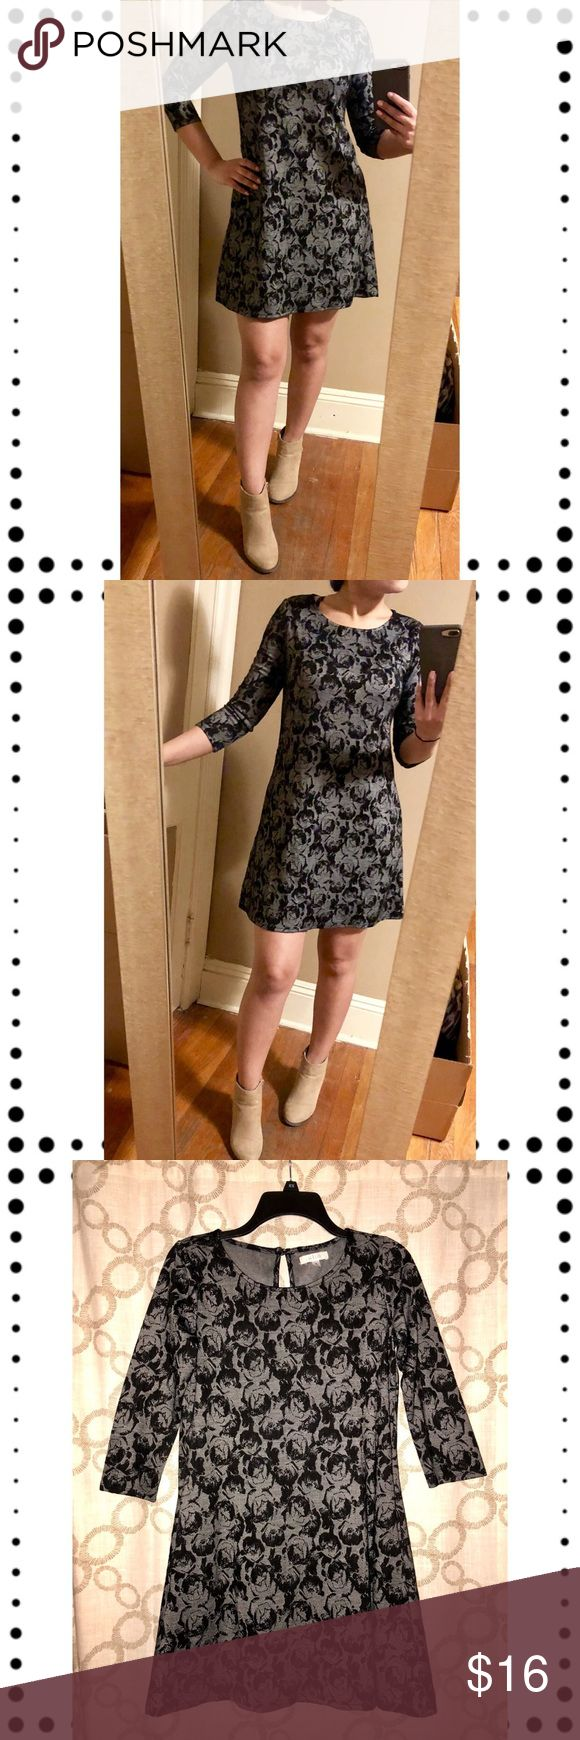 NWOT Shift dress with pockets Awesome Halo brand gray and black abstract rose print shift dress Never worn, only tried on for pictures  Pictures taken with and without flash Could fit an XS-S  The best feature are the pockets !!  Bundle and save, I'll make a private offer 🛍🛍🛍 Halo Dresses